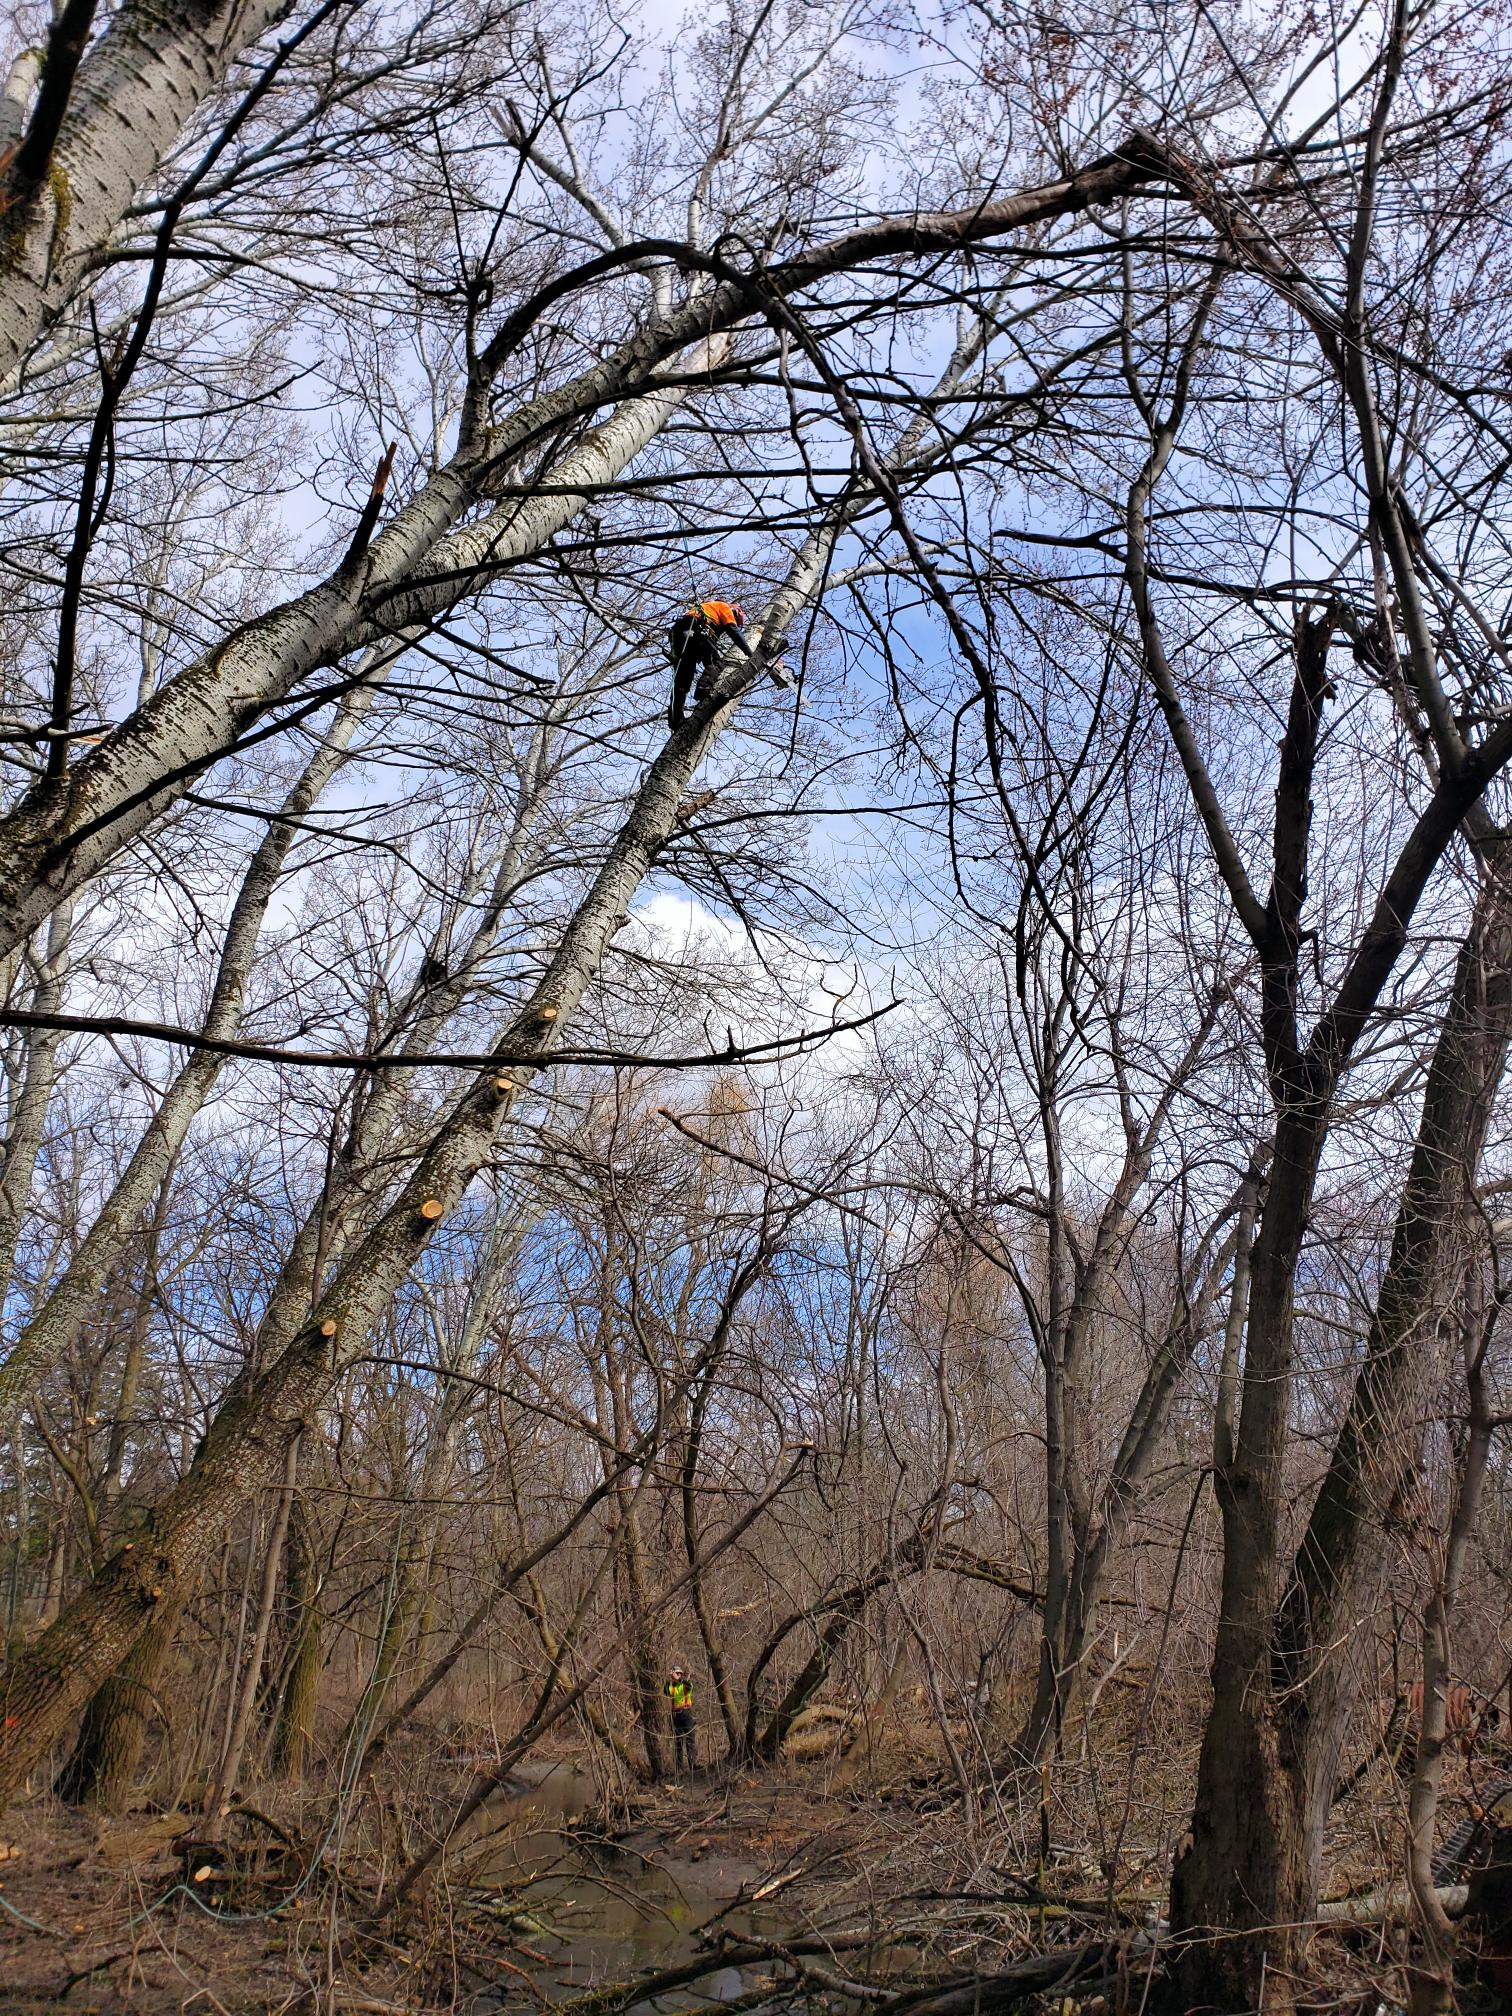 TRCA crew member conducting tree removal work